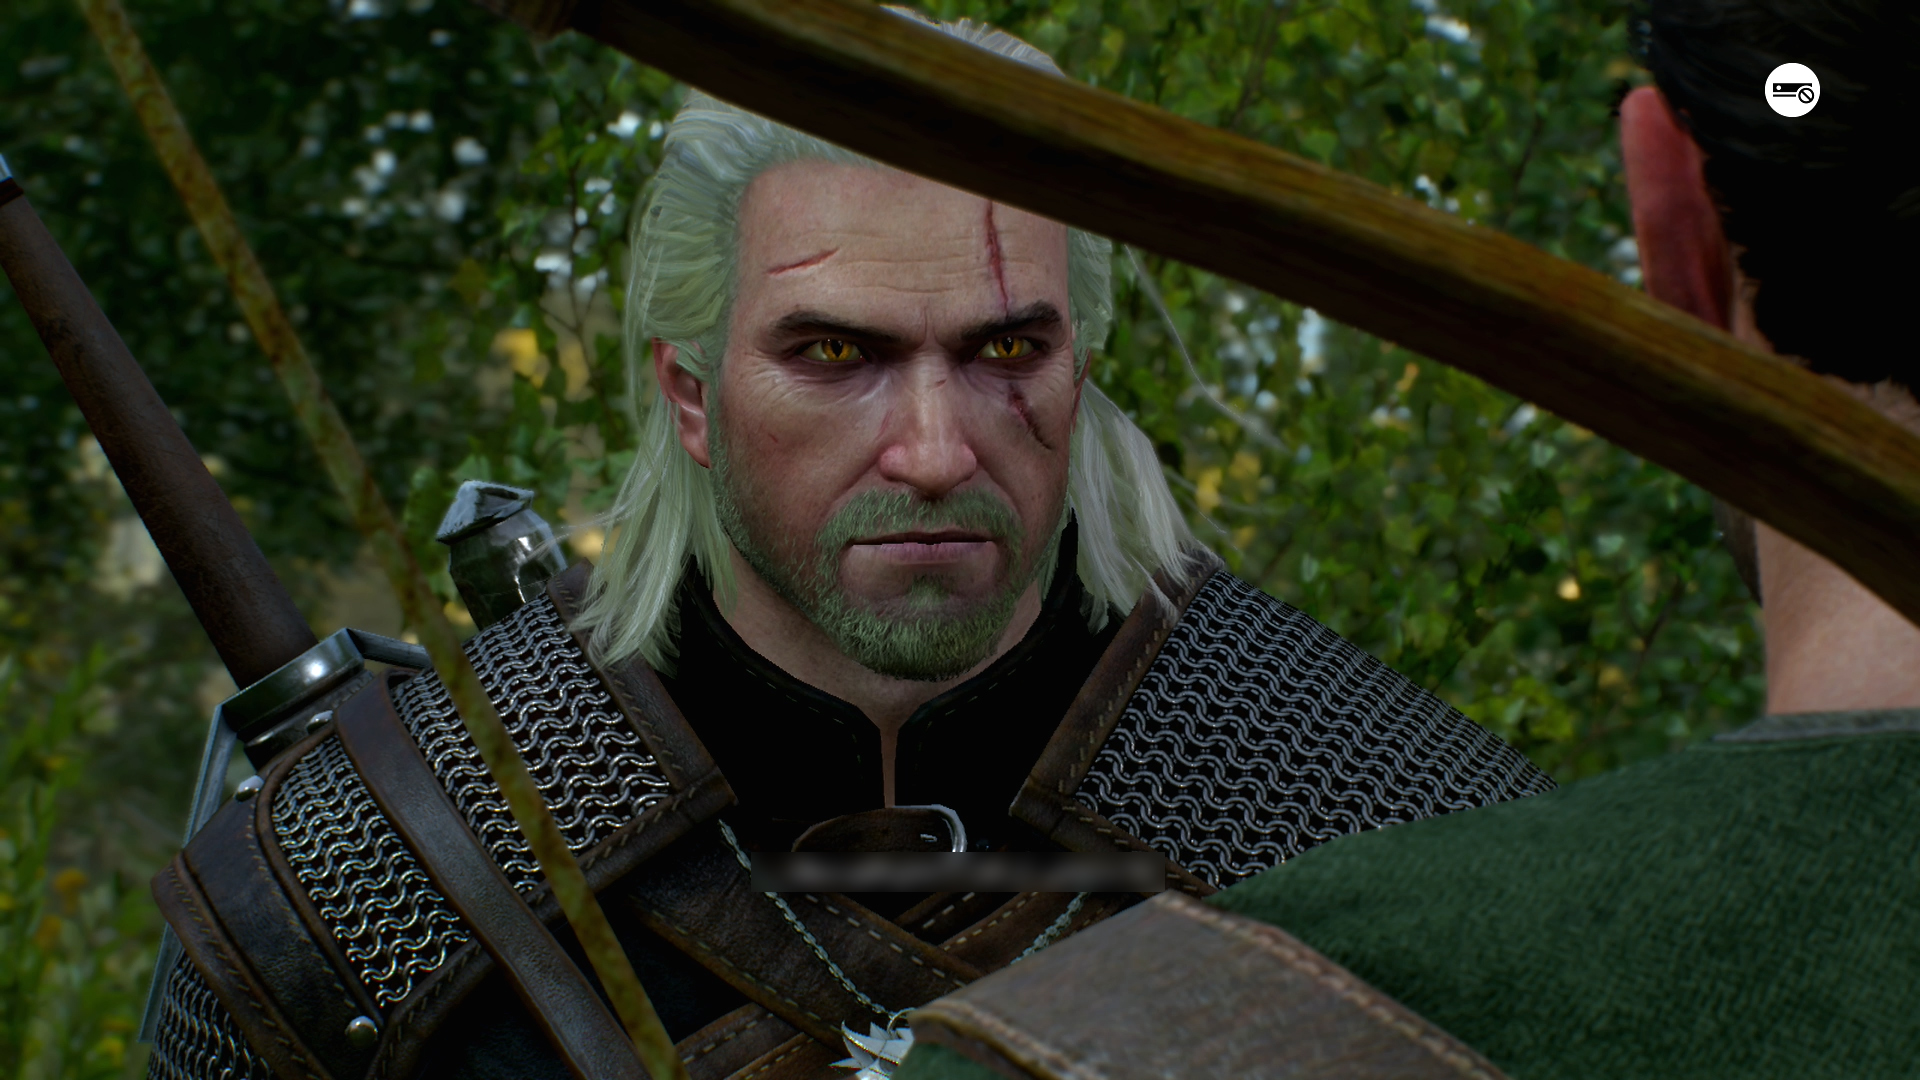 The Witcher 3 Week 5 Free Dlc Includes Alternative Look For Triss And Scavenger Hunt Wolf School Gear